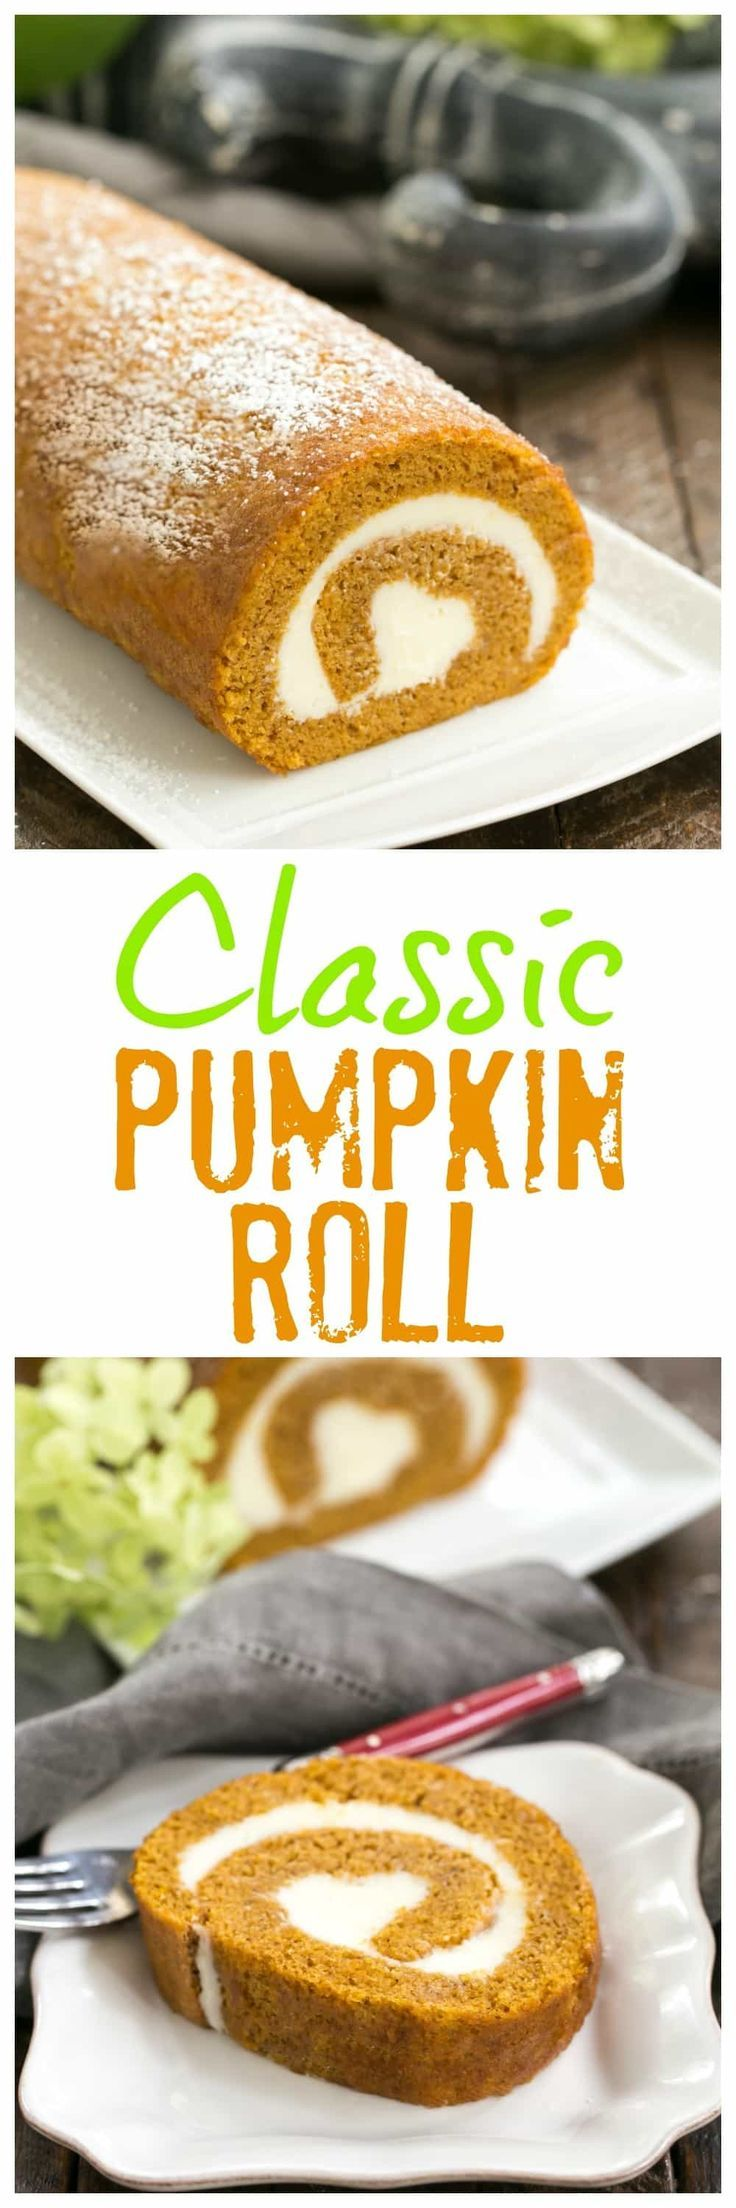 Old Fashioned Pumpkin Roll | With a cream cheese filling, this classic fall treat always gets rave reviews! #pumpkin #cakeroll